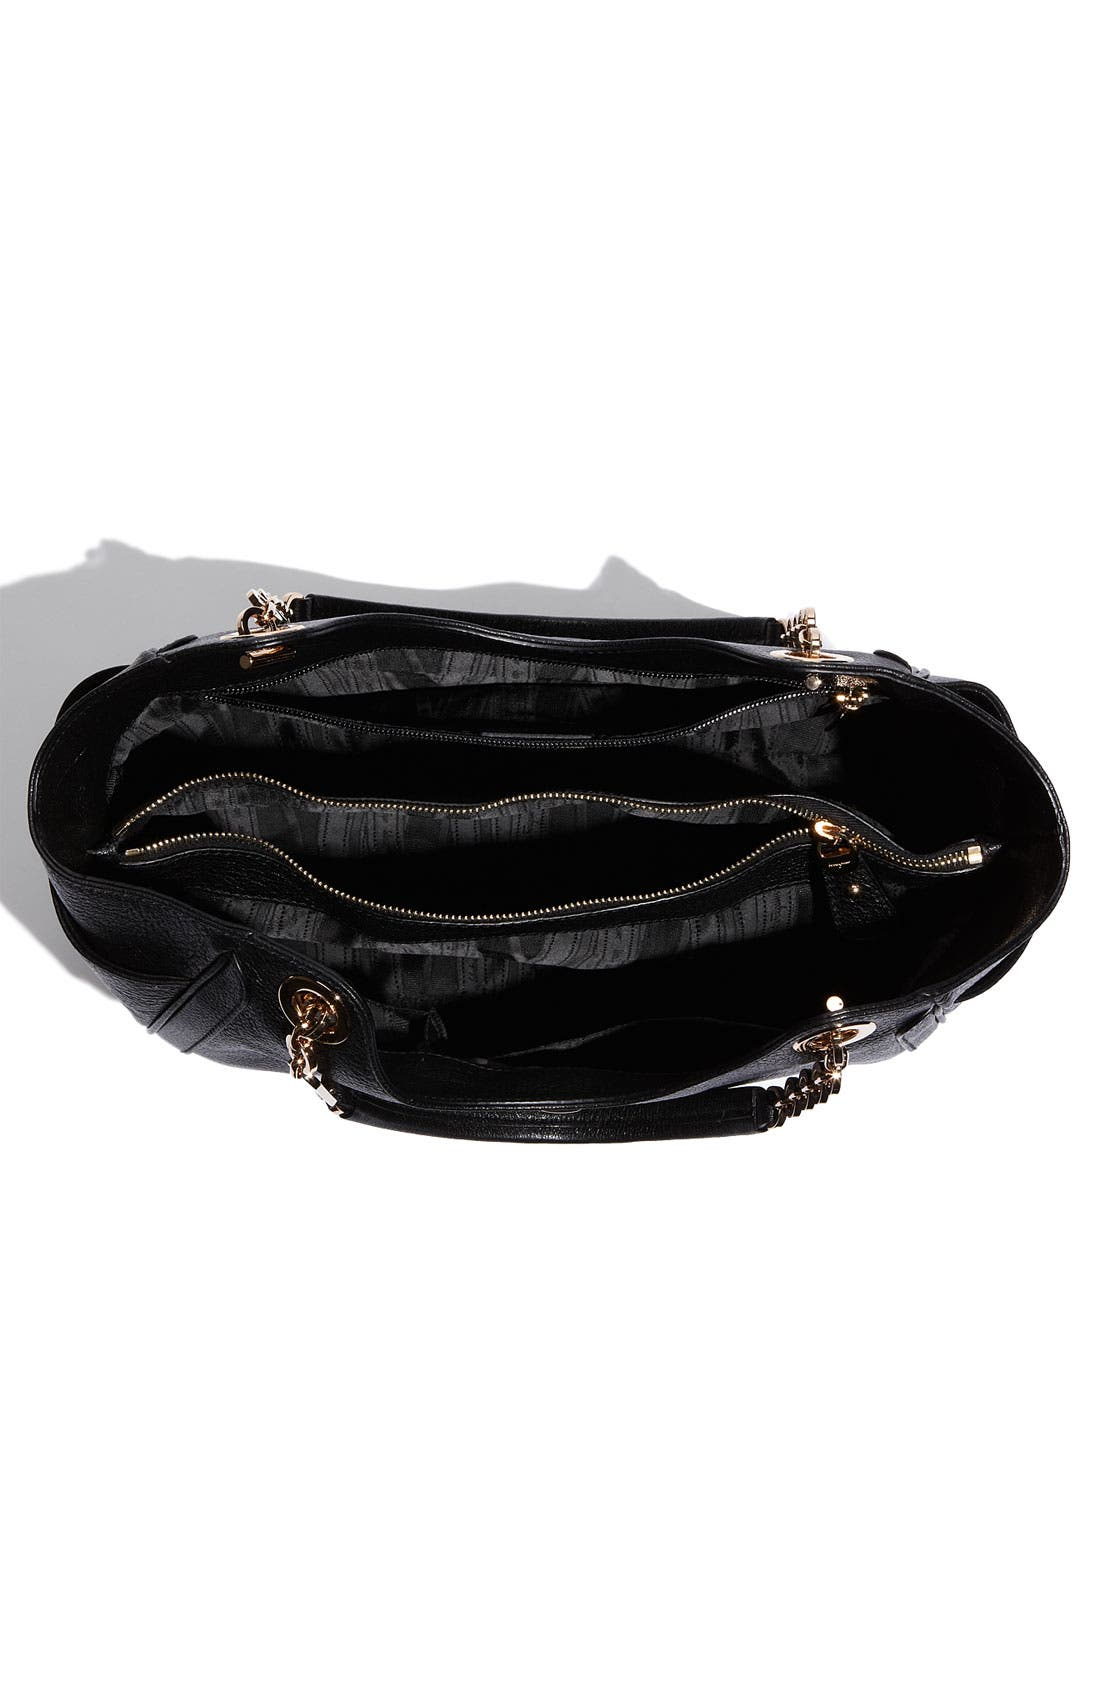 Alternate Image 3  - Salvatore Ferragamo 'Betulla Chain' Leather Shopper